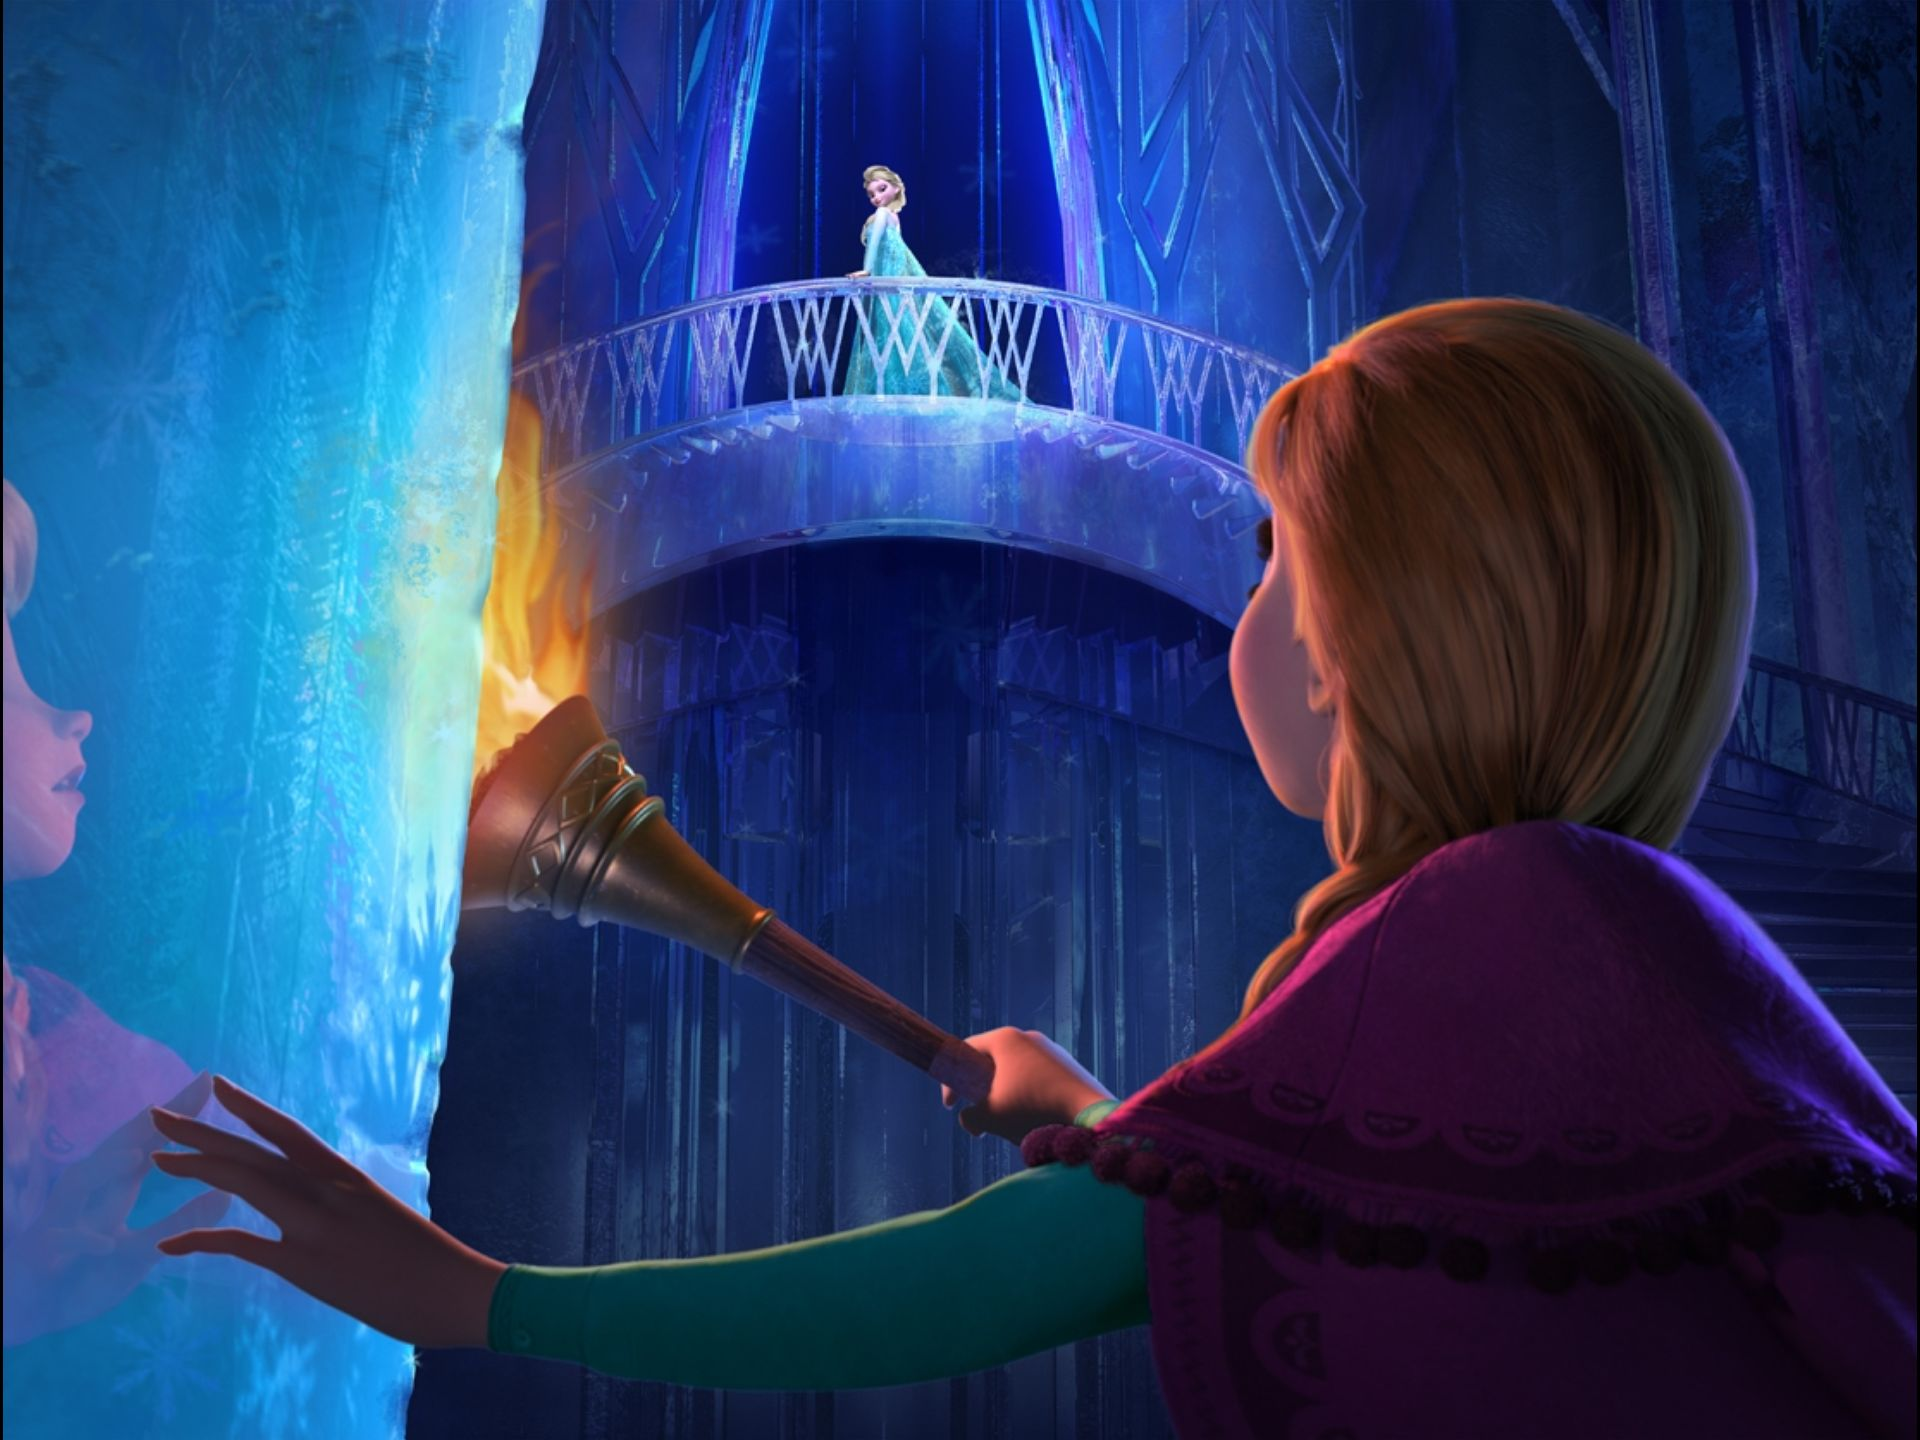 Debate movie review disney 39 s frozen - Frozen anna disney ...